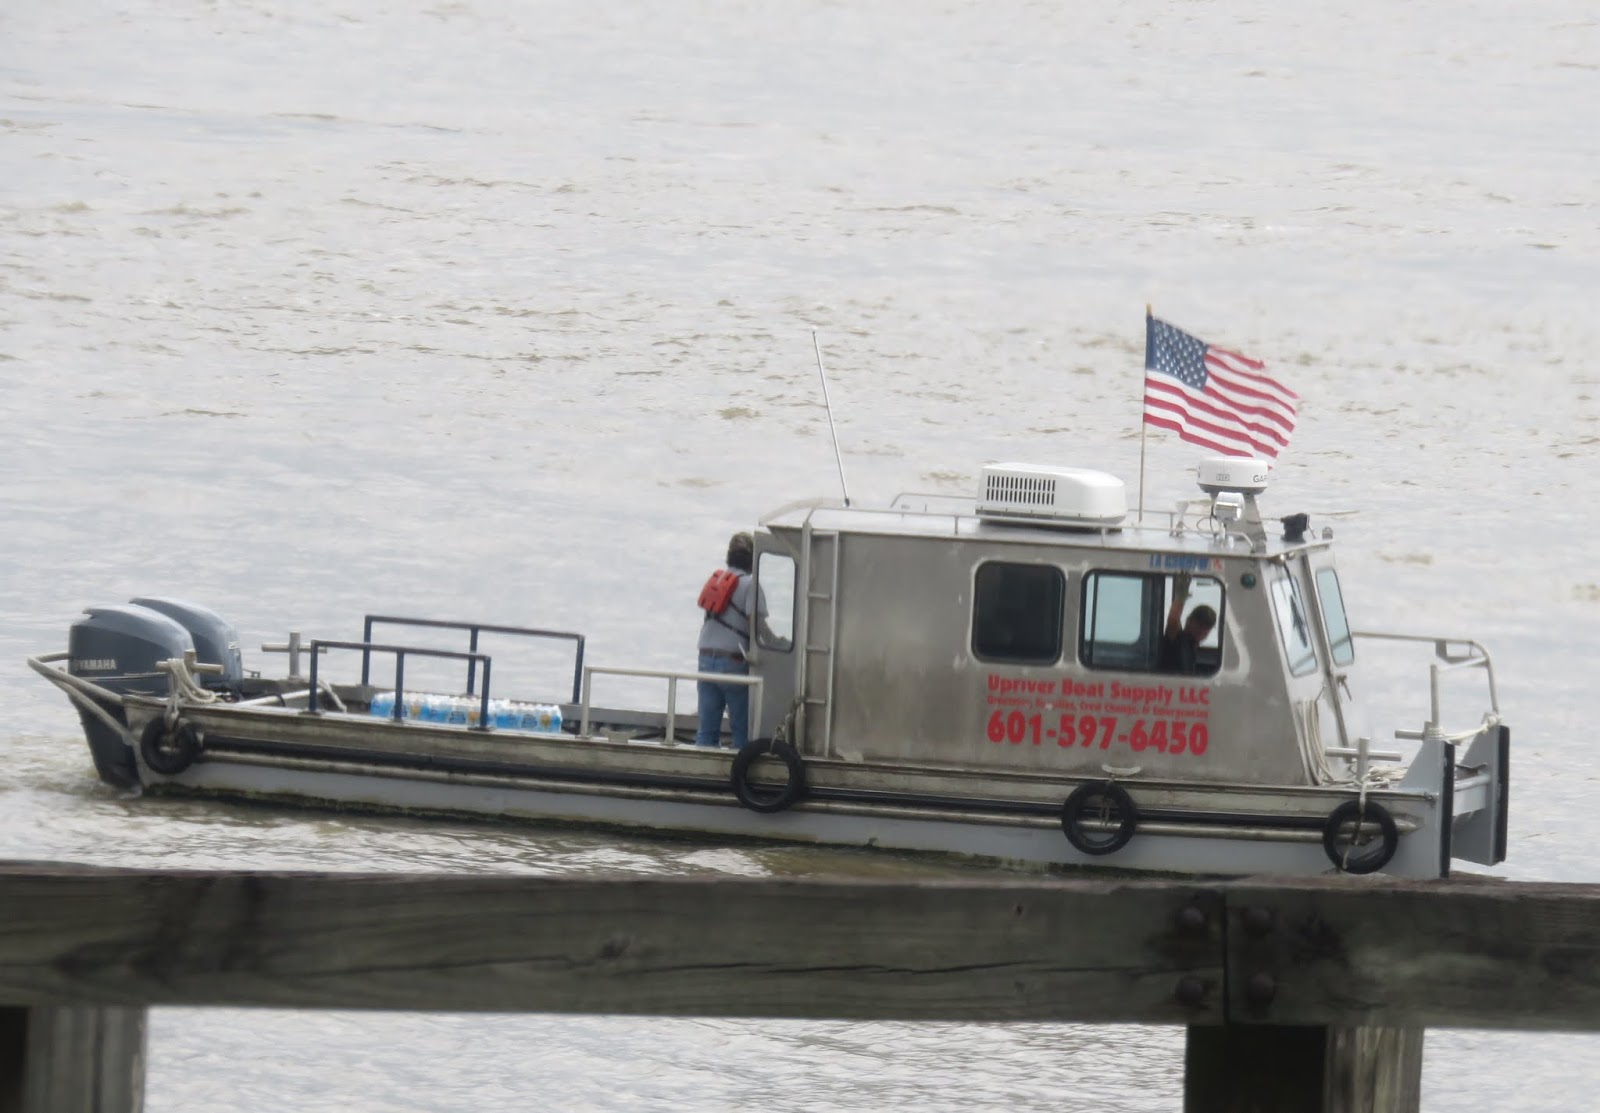 Big Daddy Dave: A Snack and the Busy Mississippi River